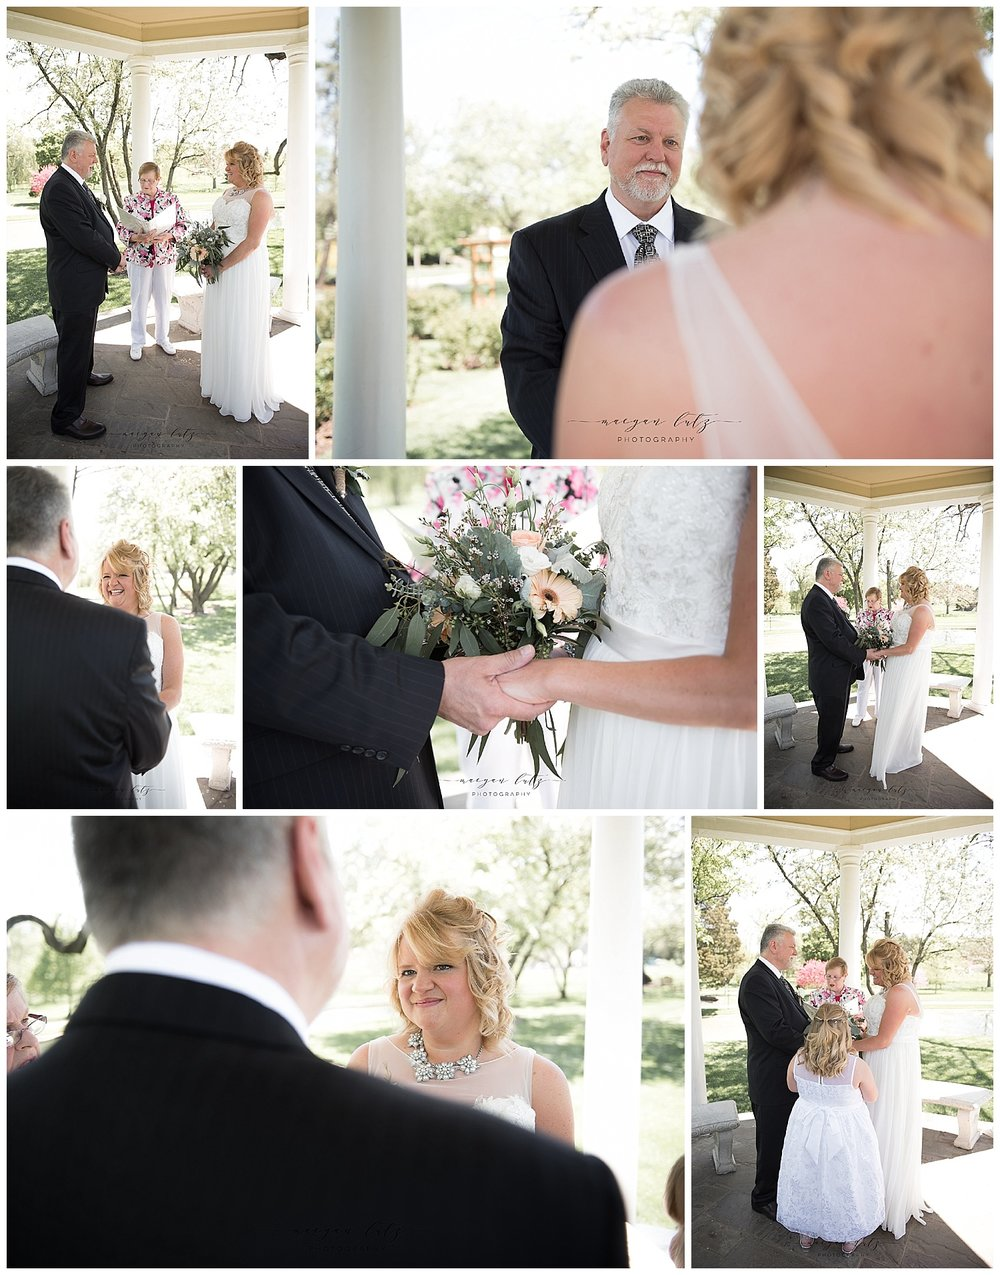 Wedding Photographer in Allentown PA at the Rose Garden